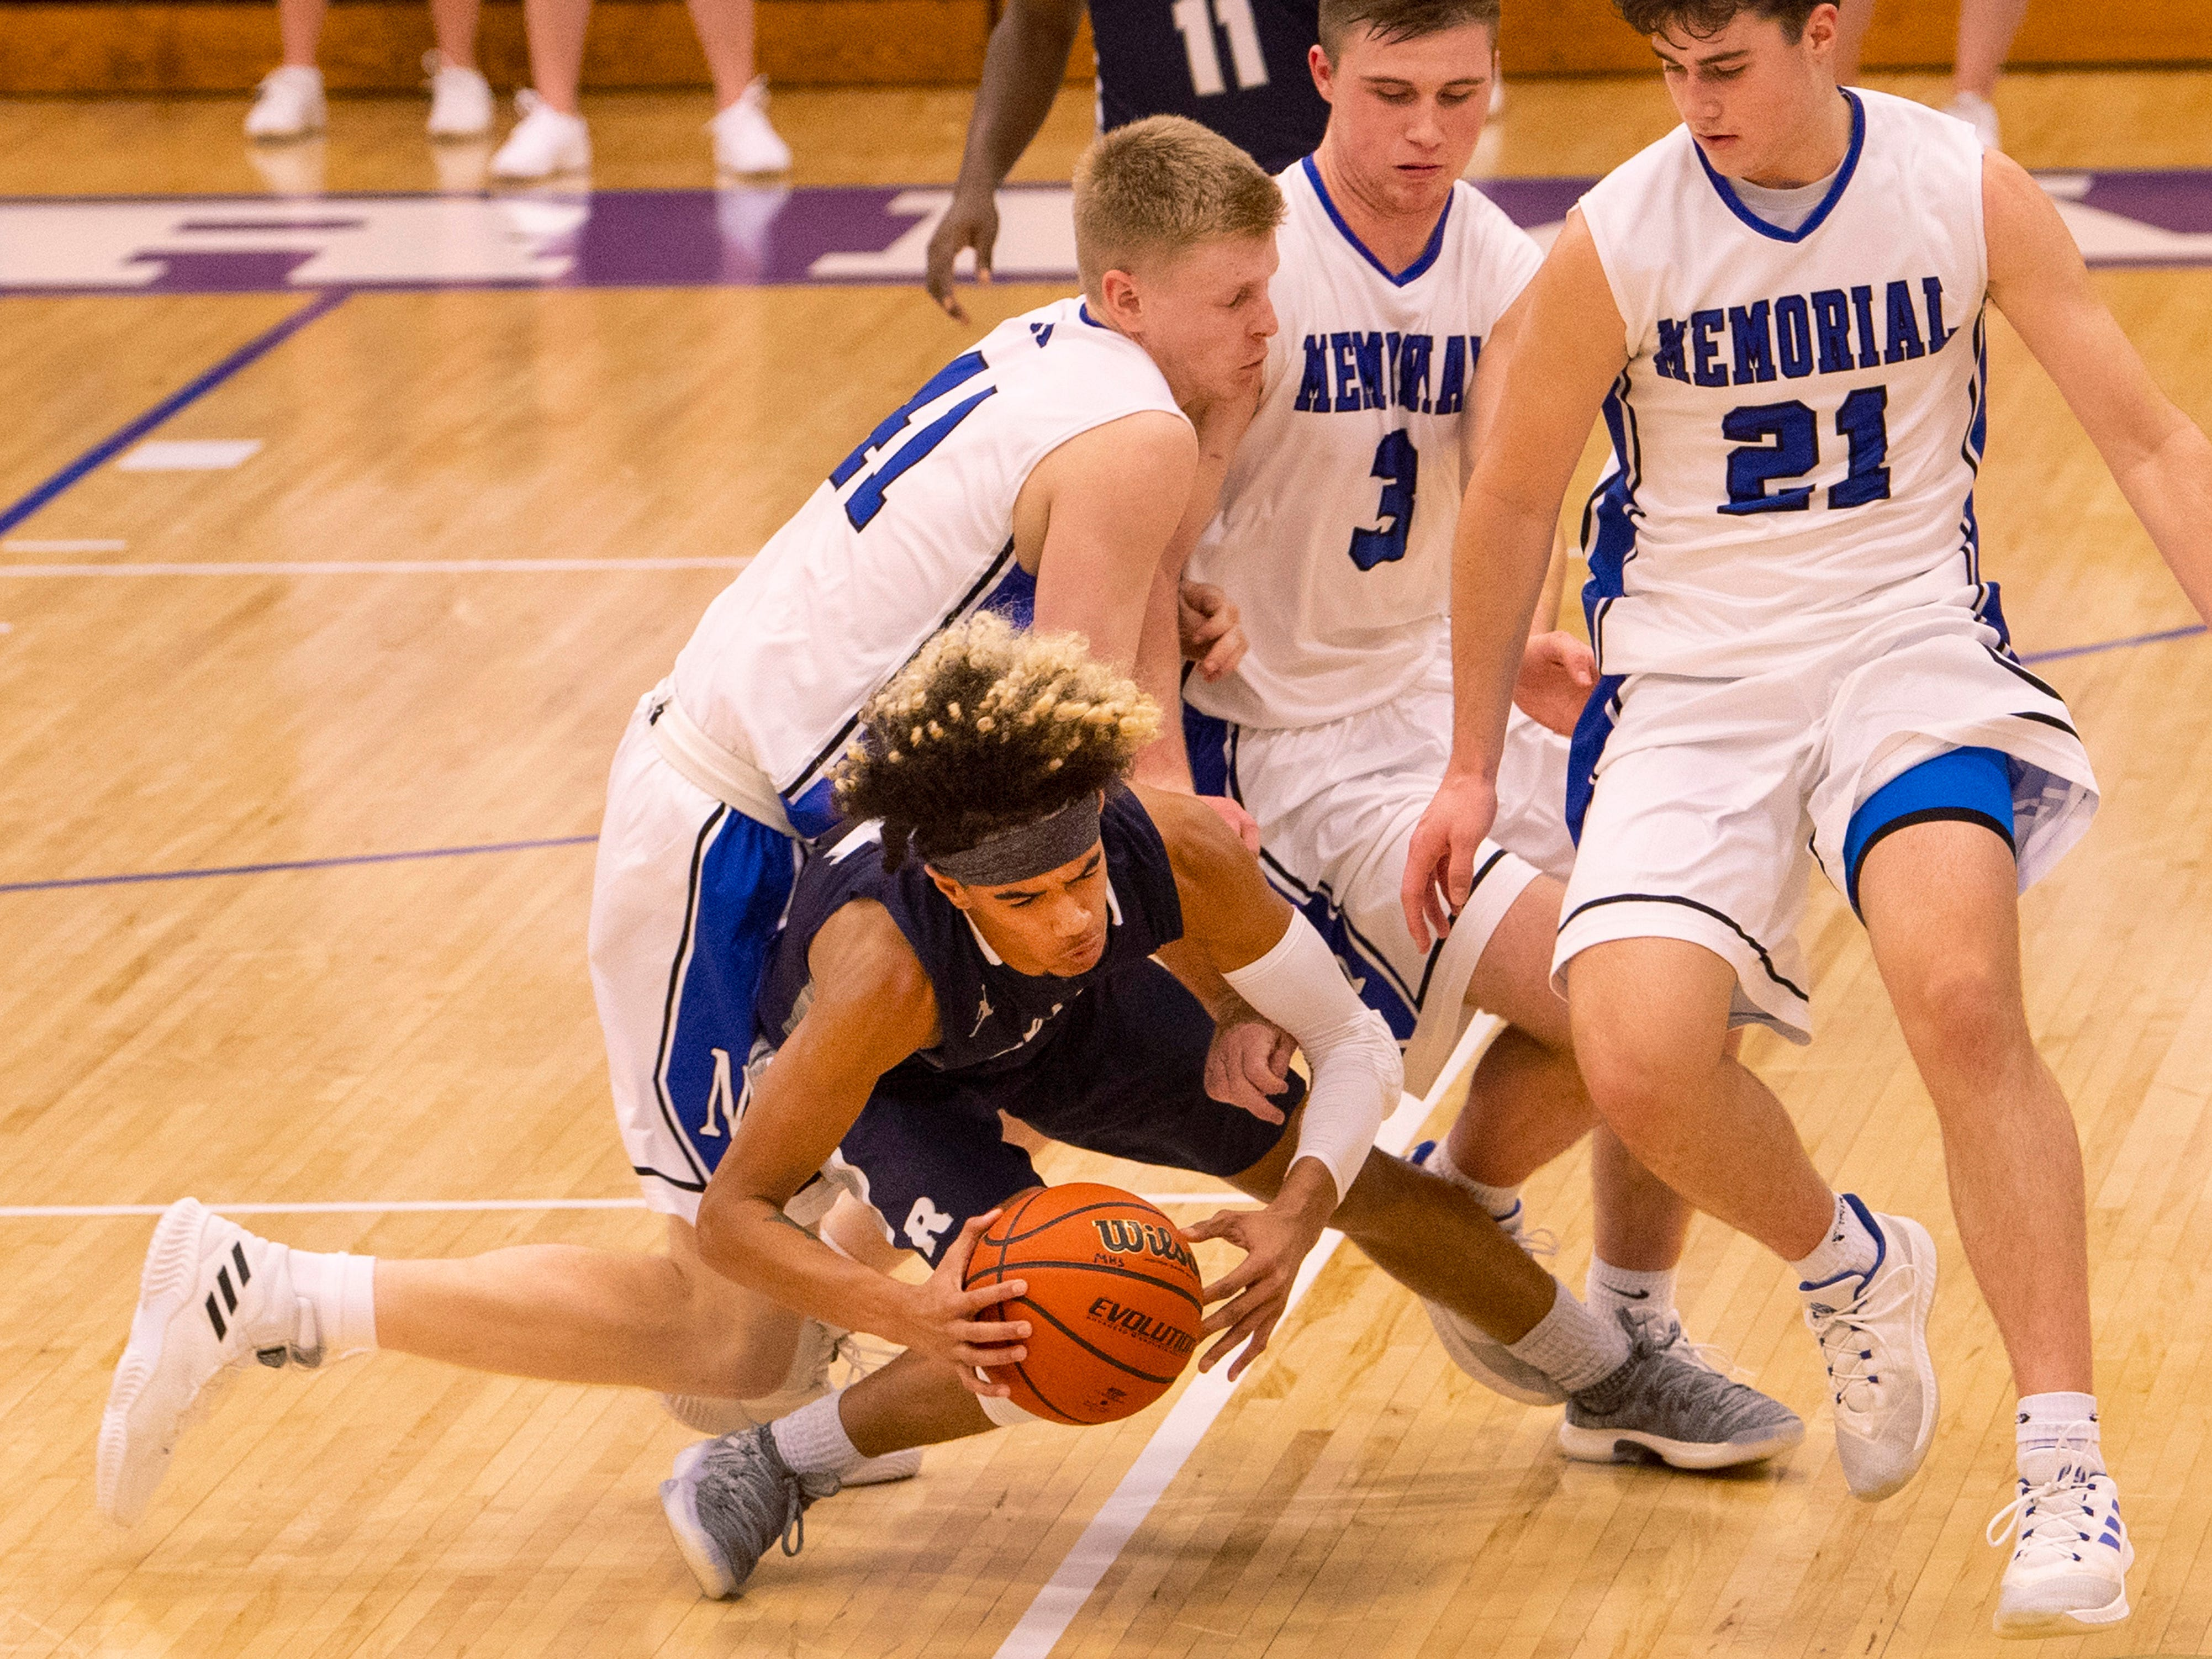 Reitz's Khristian Lander (4) is fouled hard after making a steal against Memorial in the first round of the SIAC Tournament at Memorial High School Tuesday night.